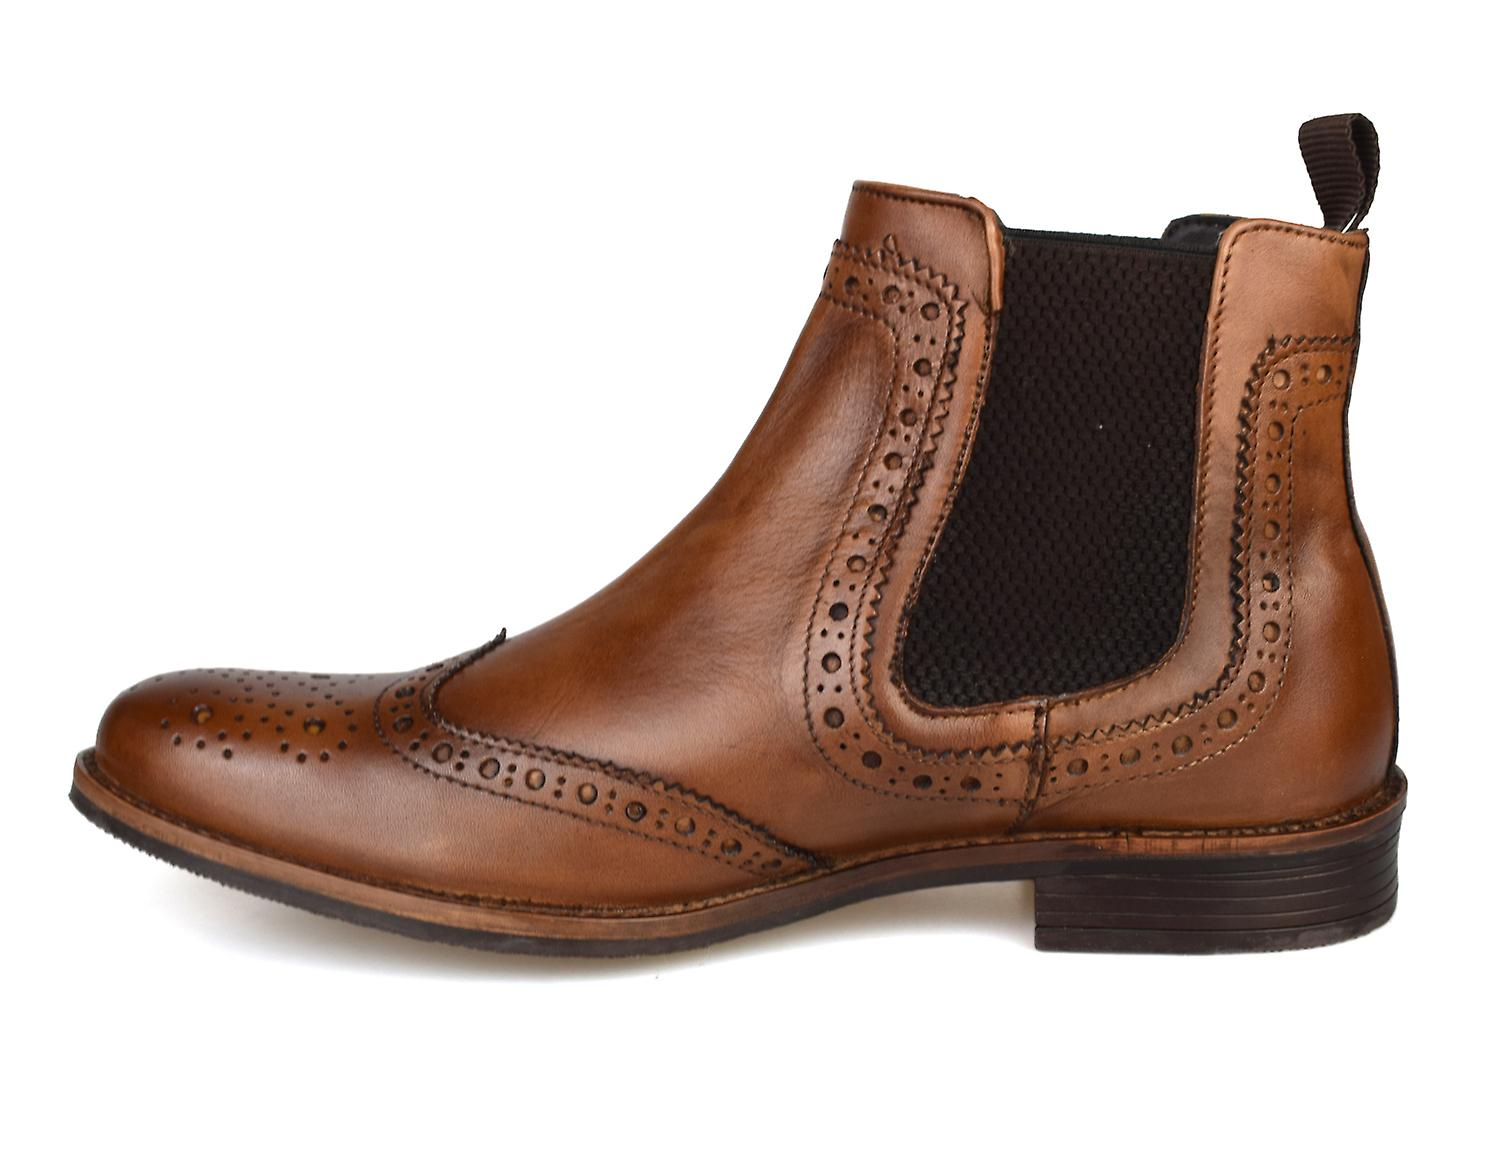 Silver Street Byron Tan Leather Brogue Mens Chelsea Boots - Gratis frakt